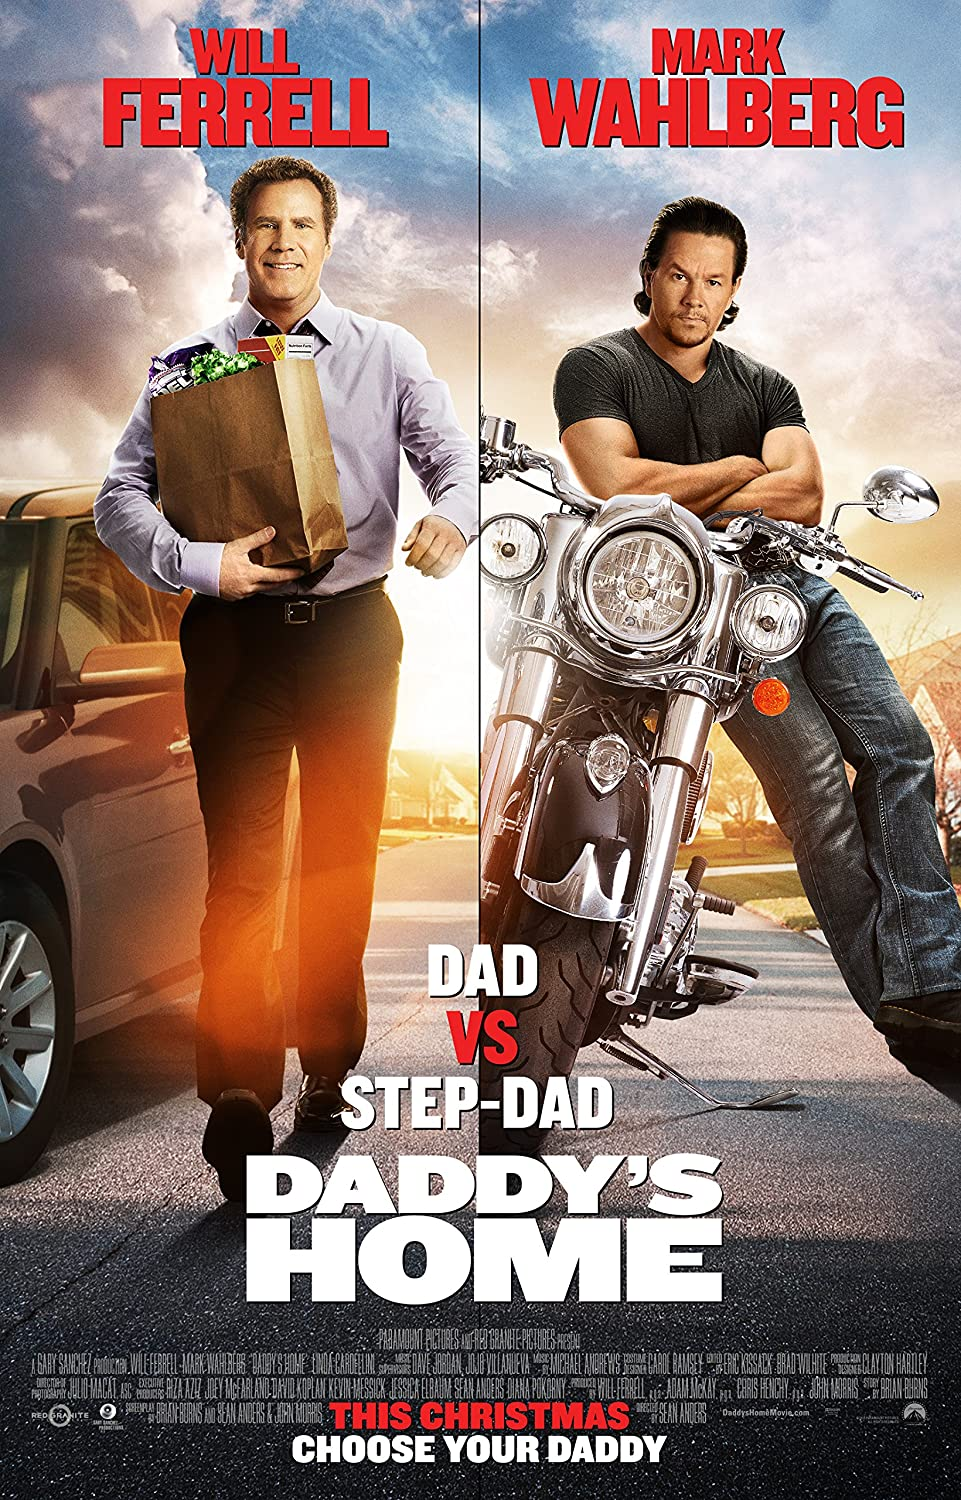 """Daddy's Home - Movie Poster (2016), Size 24 x 36"""" Inches , Glossy Photo Paper (Thick 8mil) - Mark Wahlberg, Will Ferrell"""